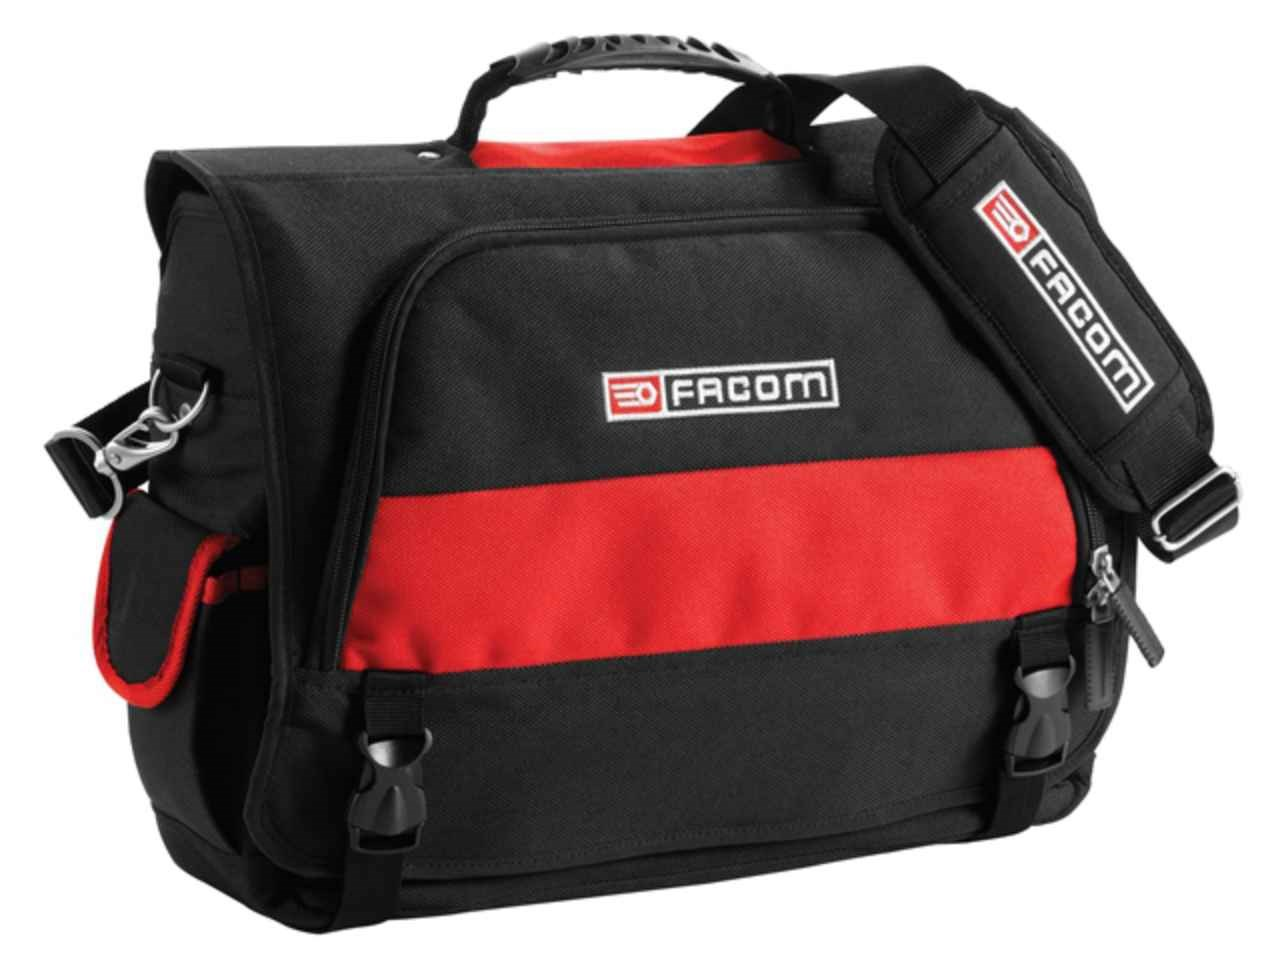 Facom Bs Tlb Laptop And Tool Soft Bag